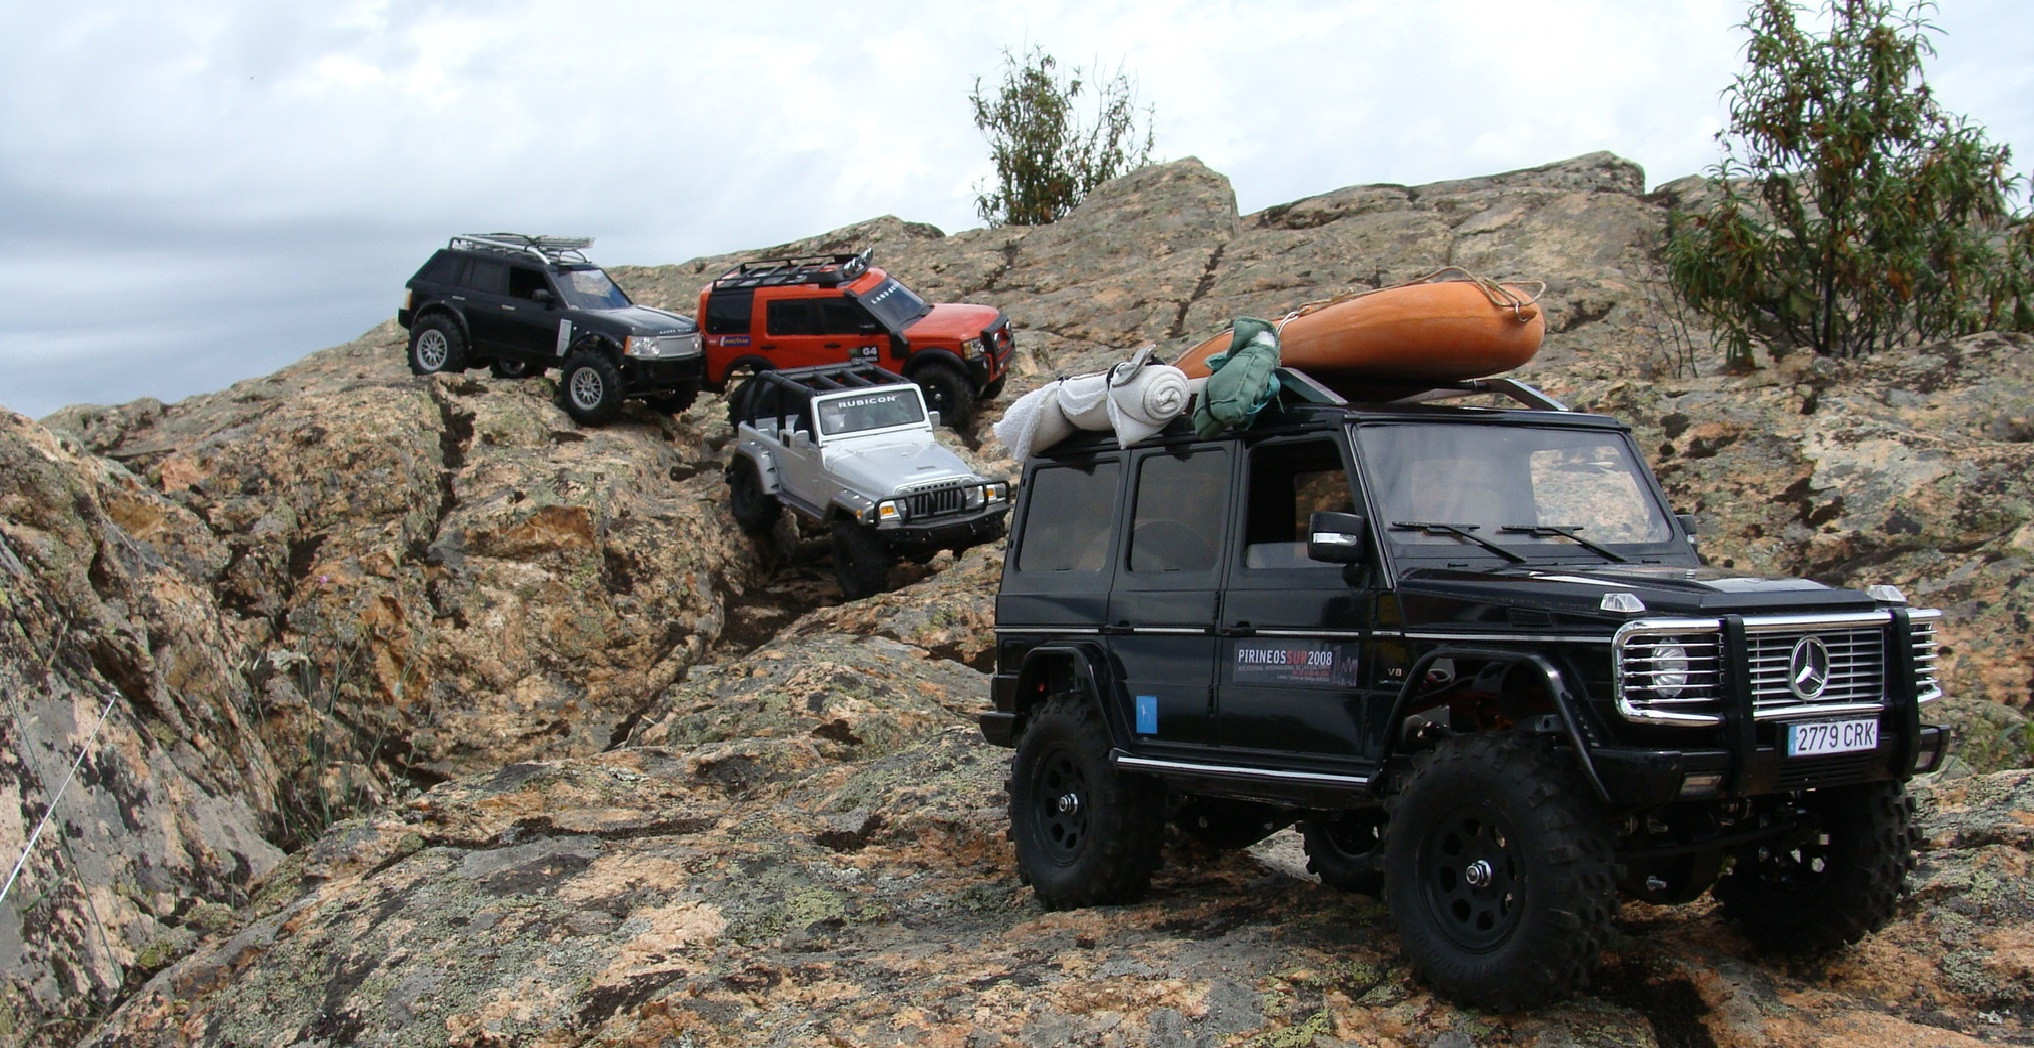 Scale crawling